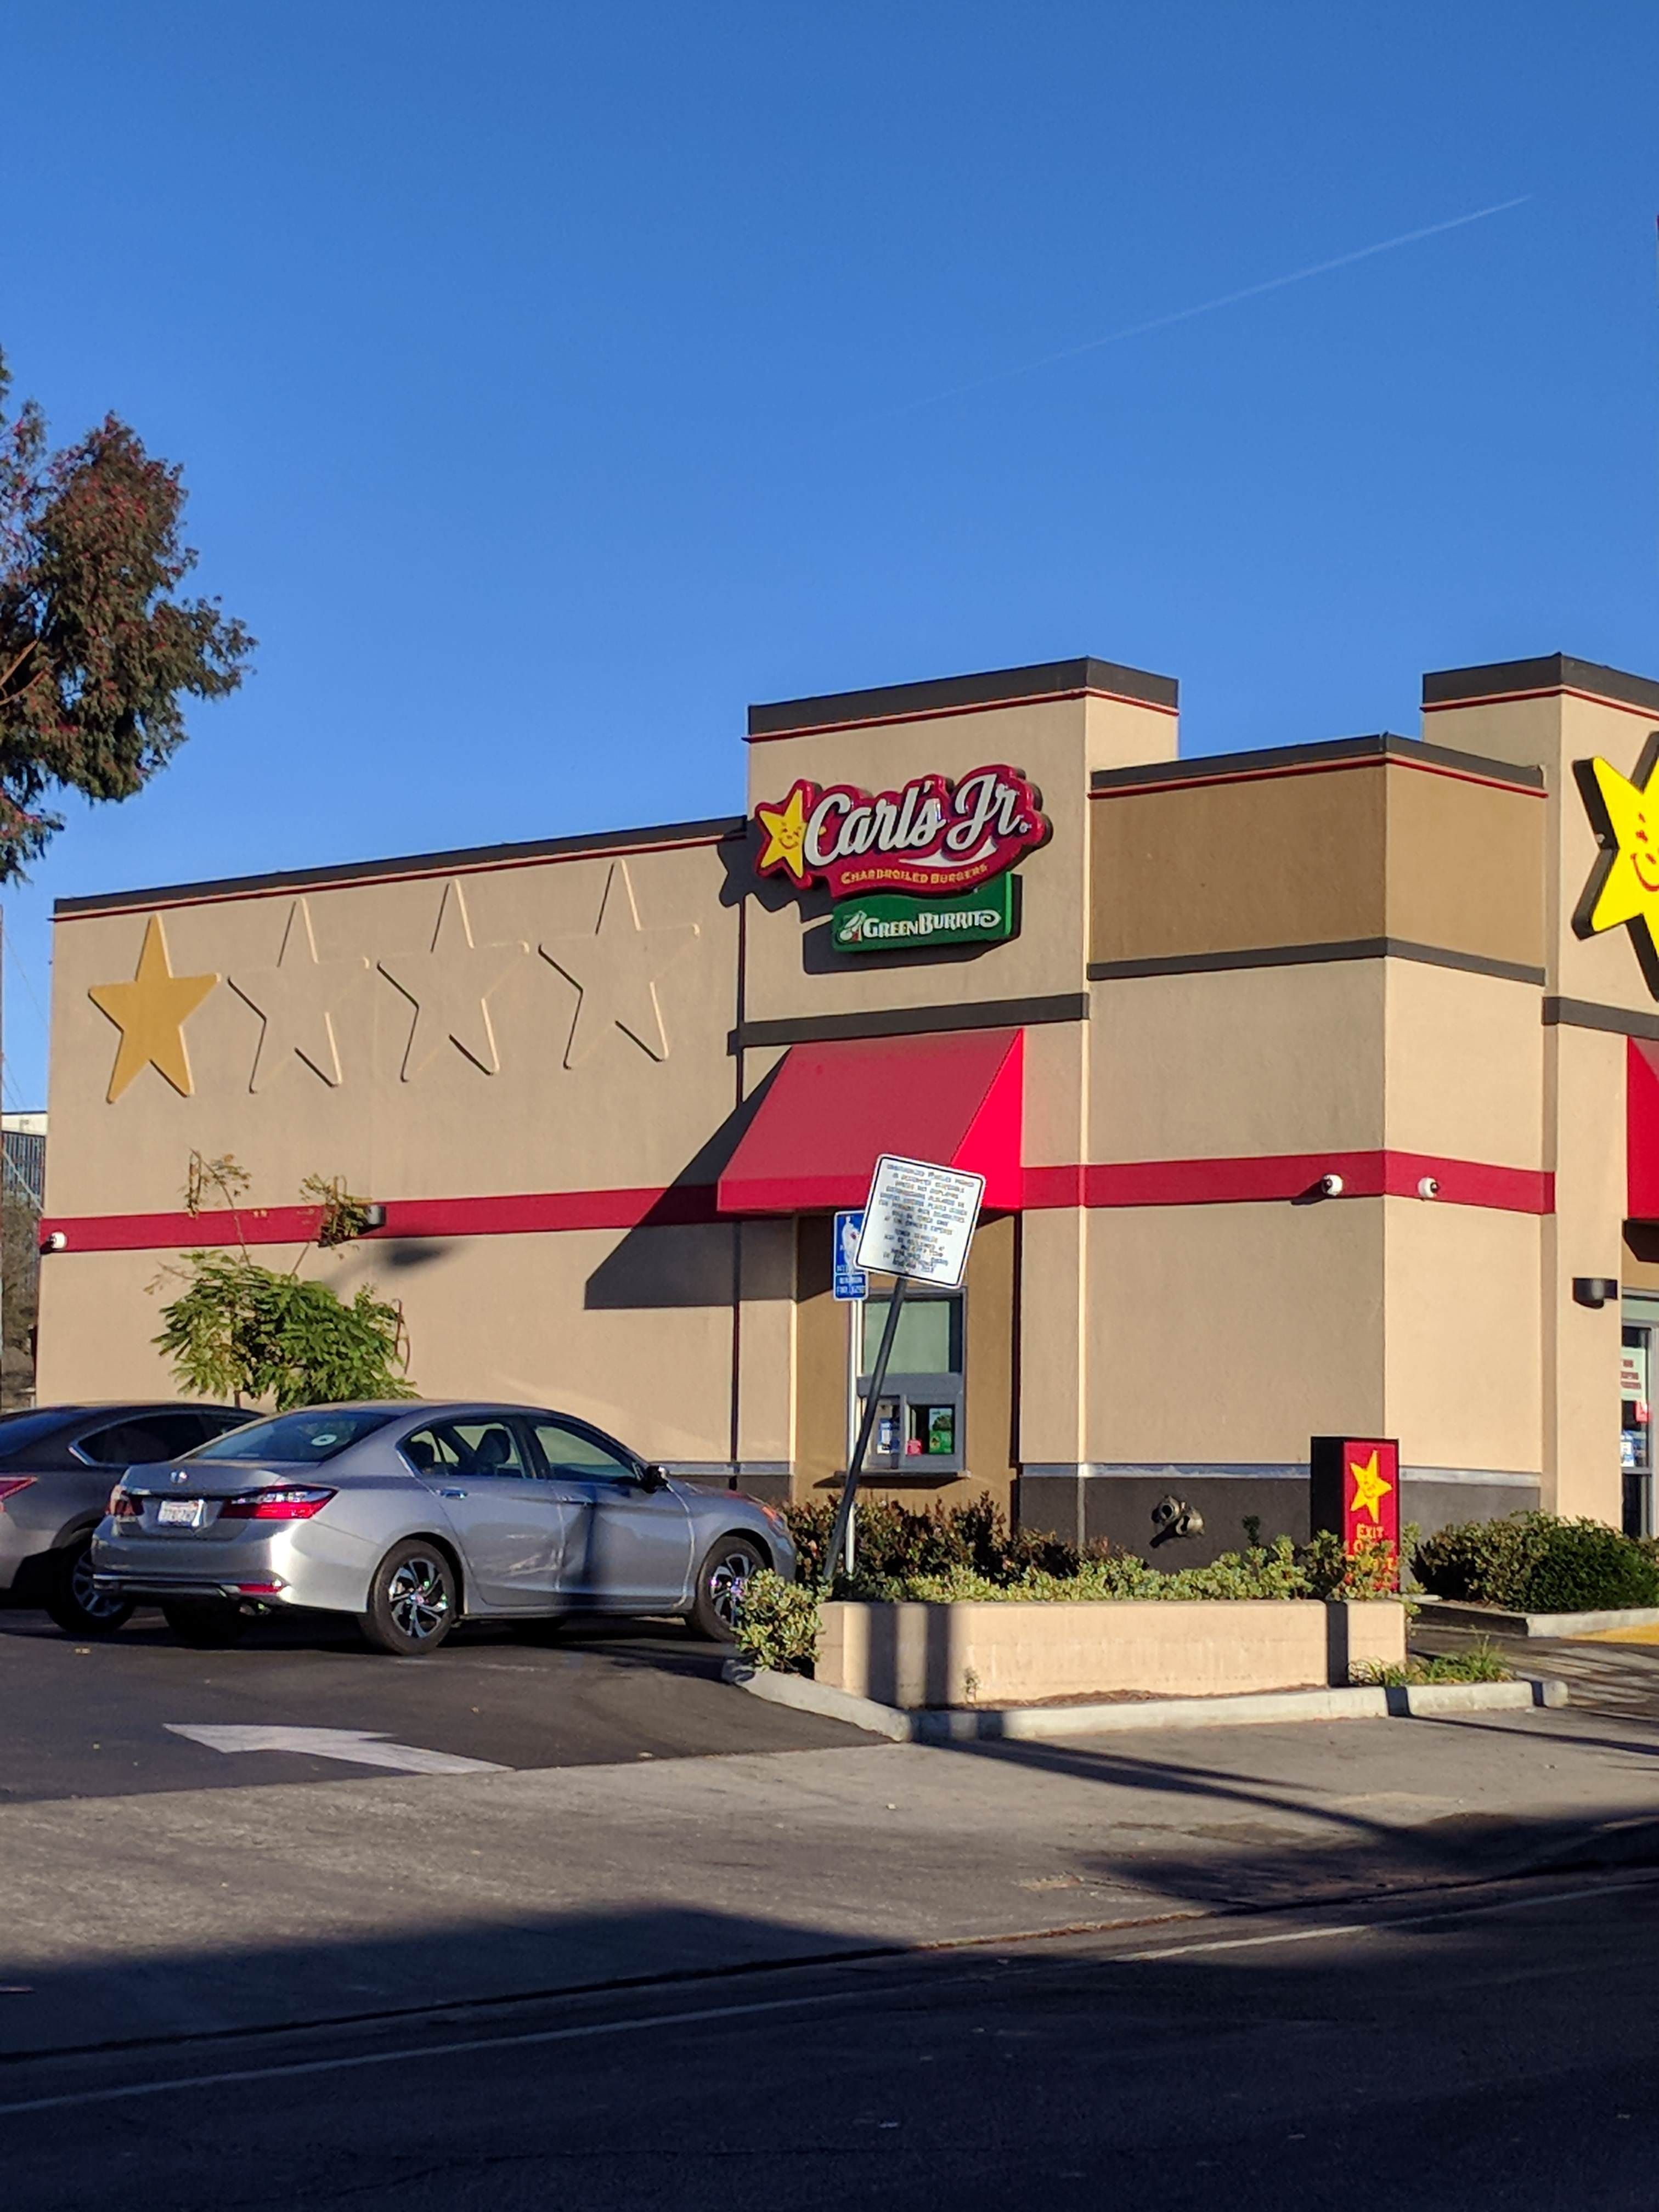 This Carl's Jr. rated itself 1 out of 4 stars.